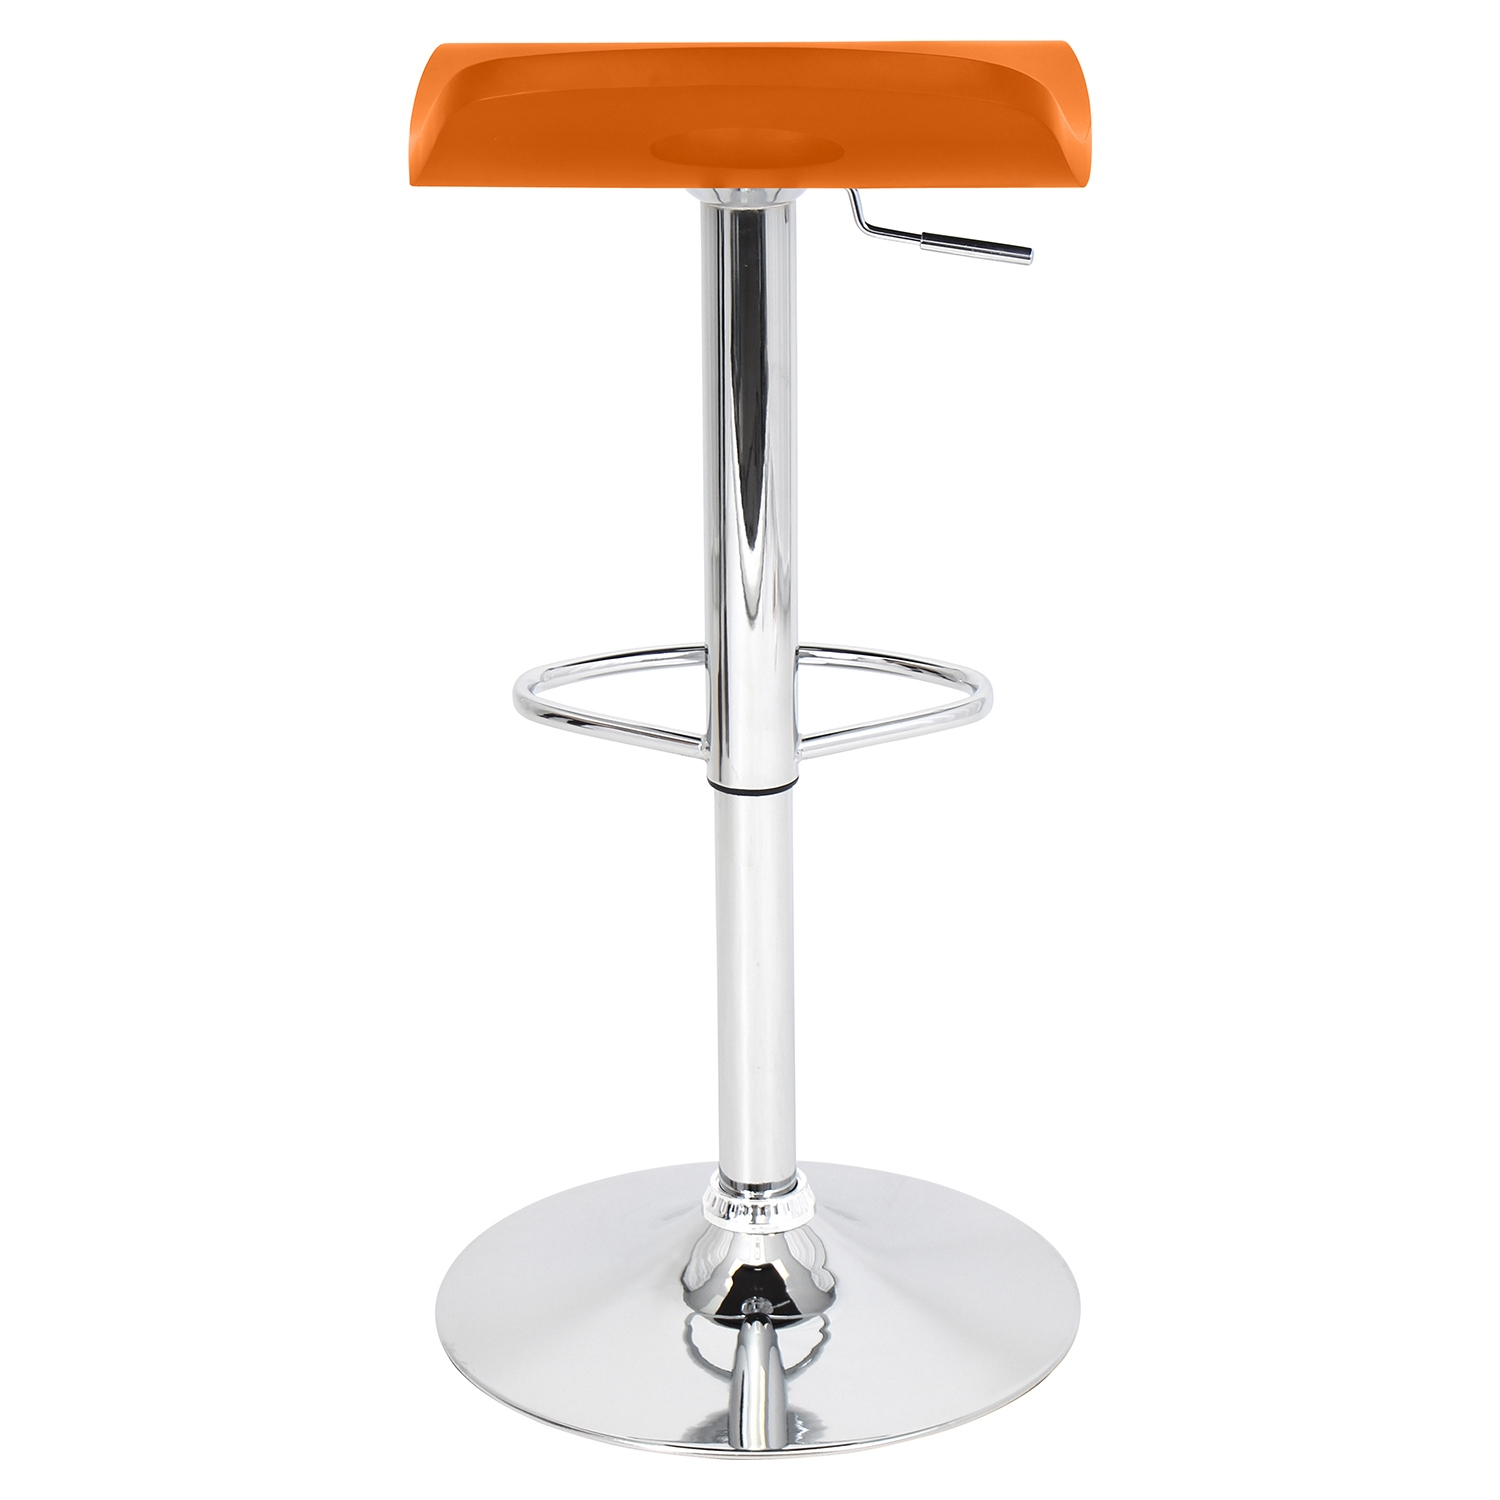 Surf Height Adjustable Barstool - Swivel, Orange - LMS-BS-TW-SURF-O